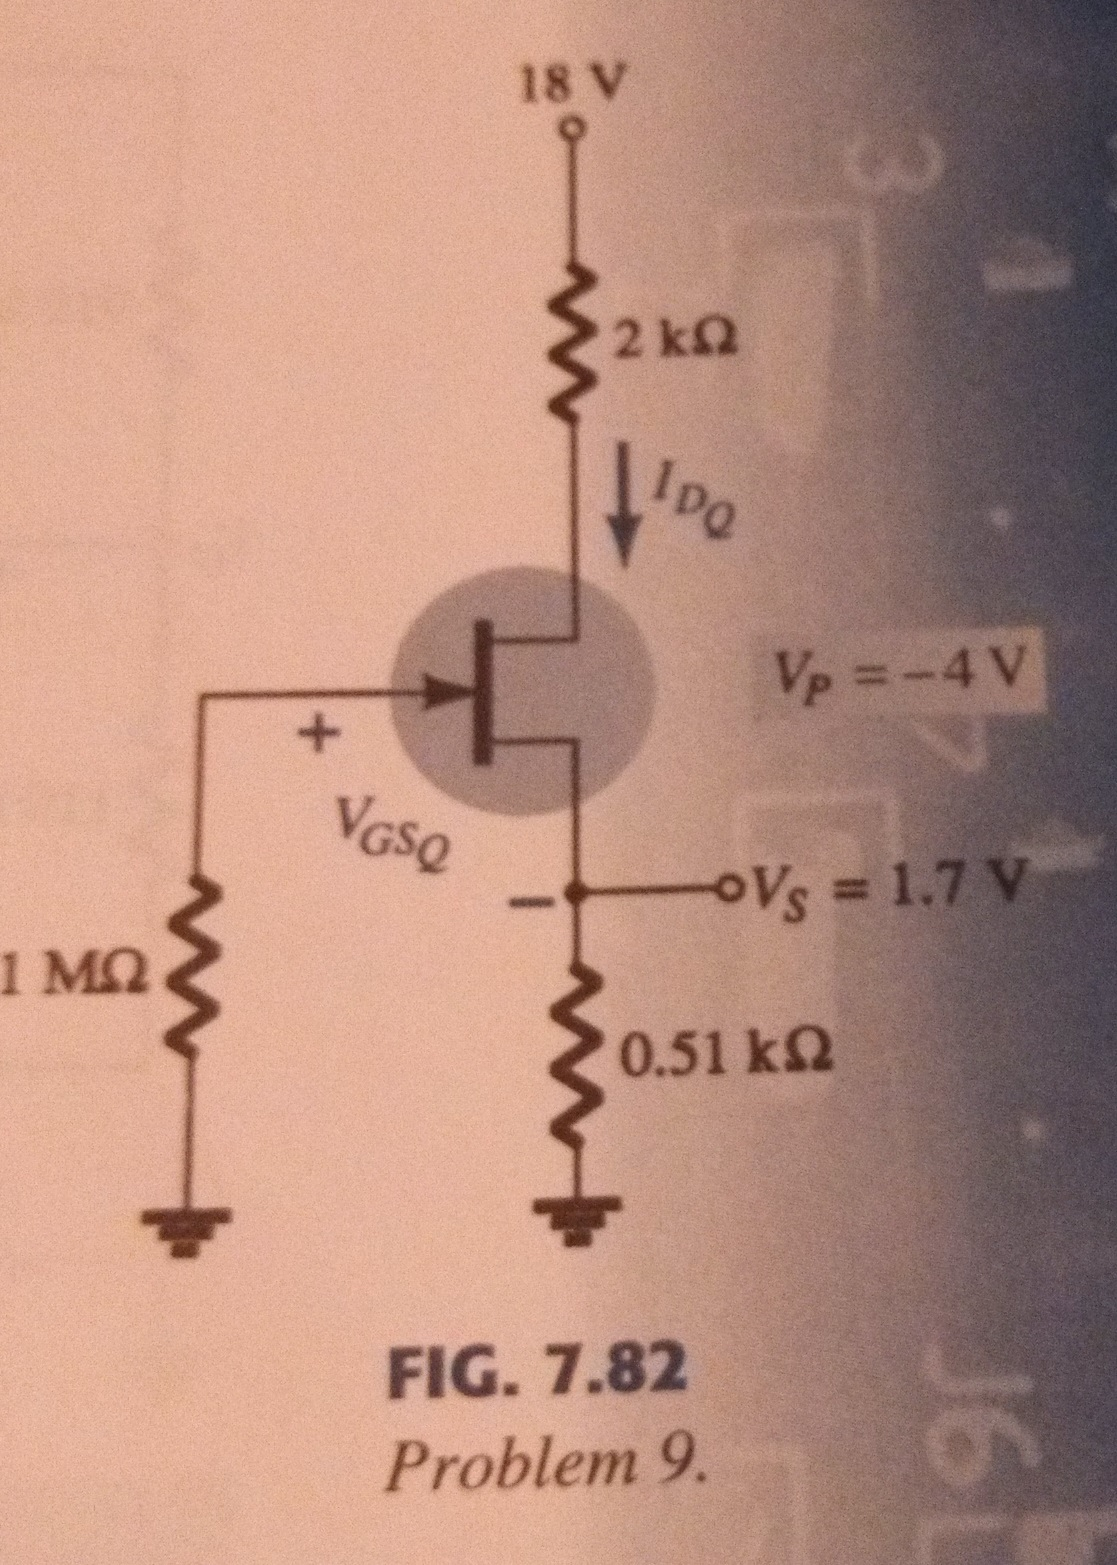 Given the measurement Vs=1.7V for the network of f